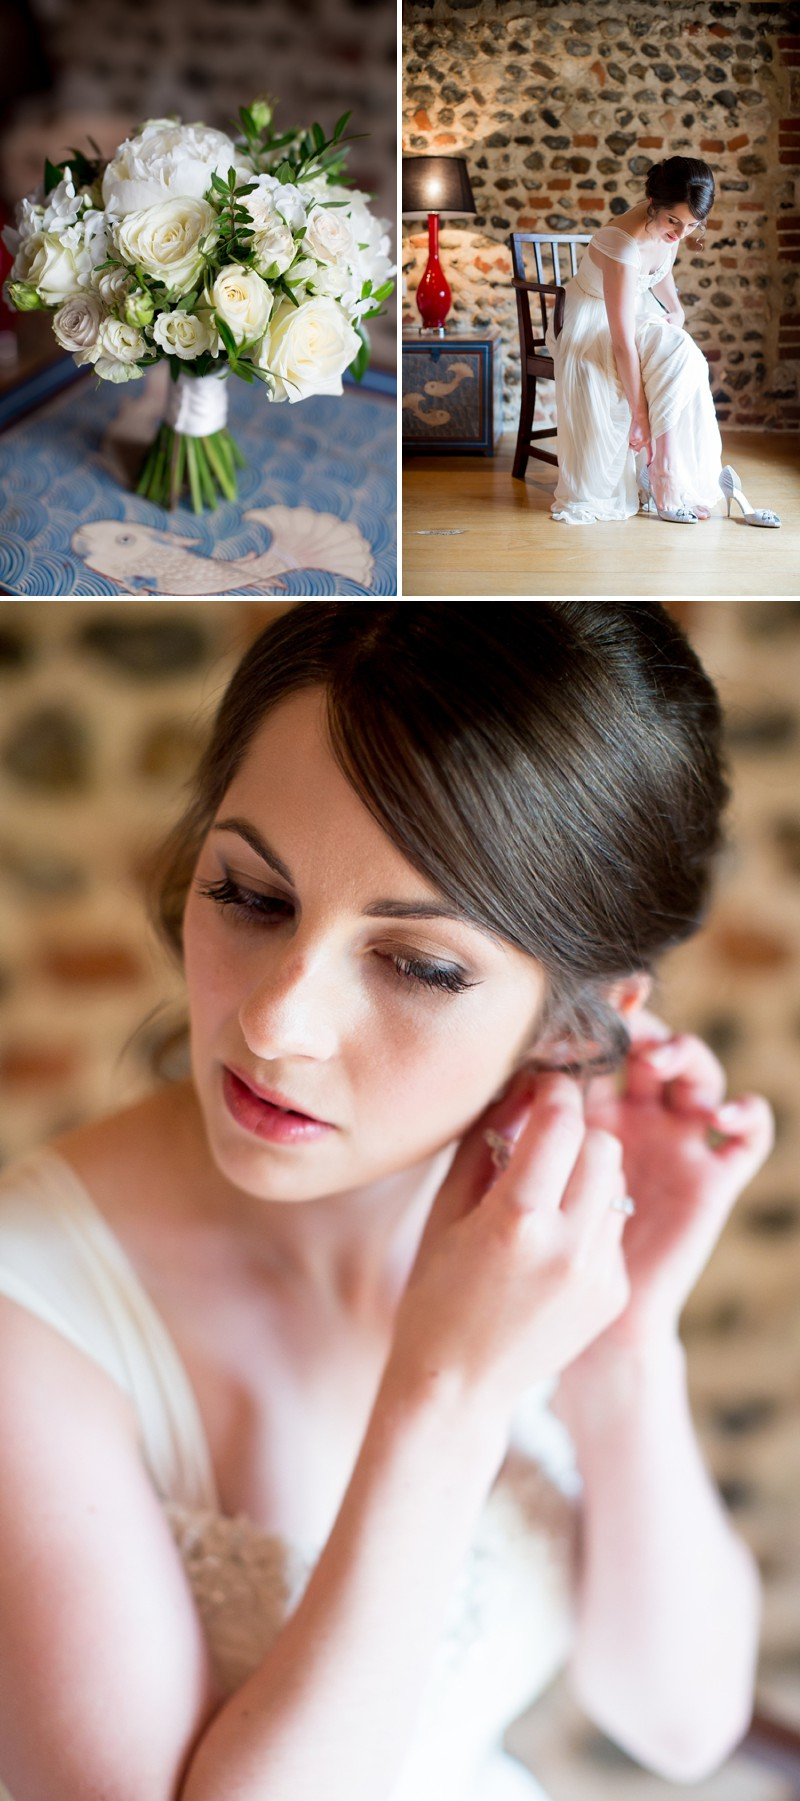 A Romantic Wedding At Chaucer Barn With A Blue Origami Cranes Theme And A Theia Wedding Dress With A White Rose And Peony Bouquet Photographed By Katherine Ashdown._0001